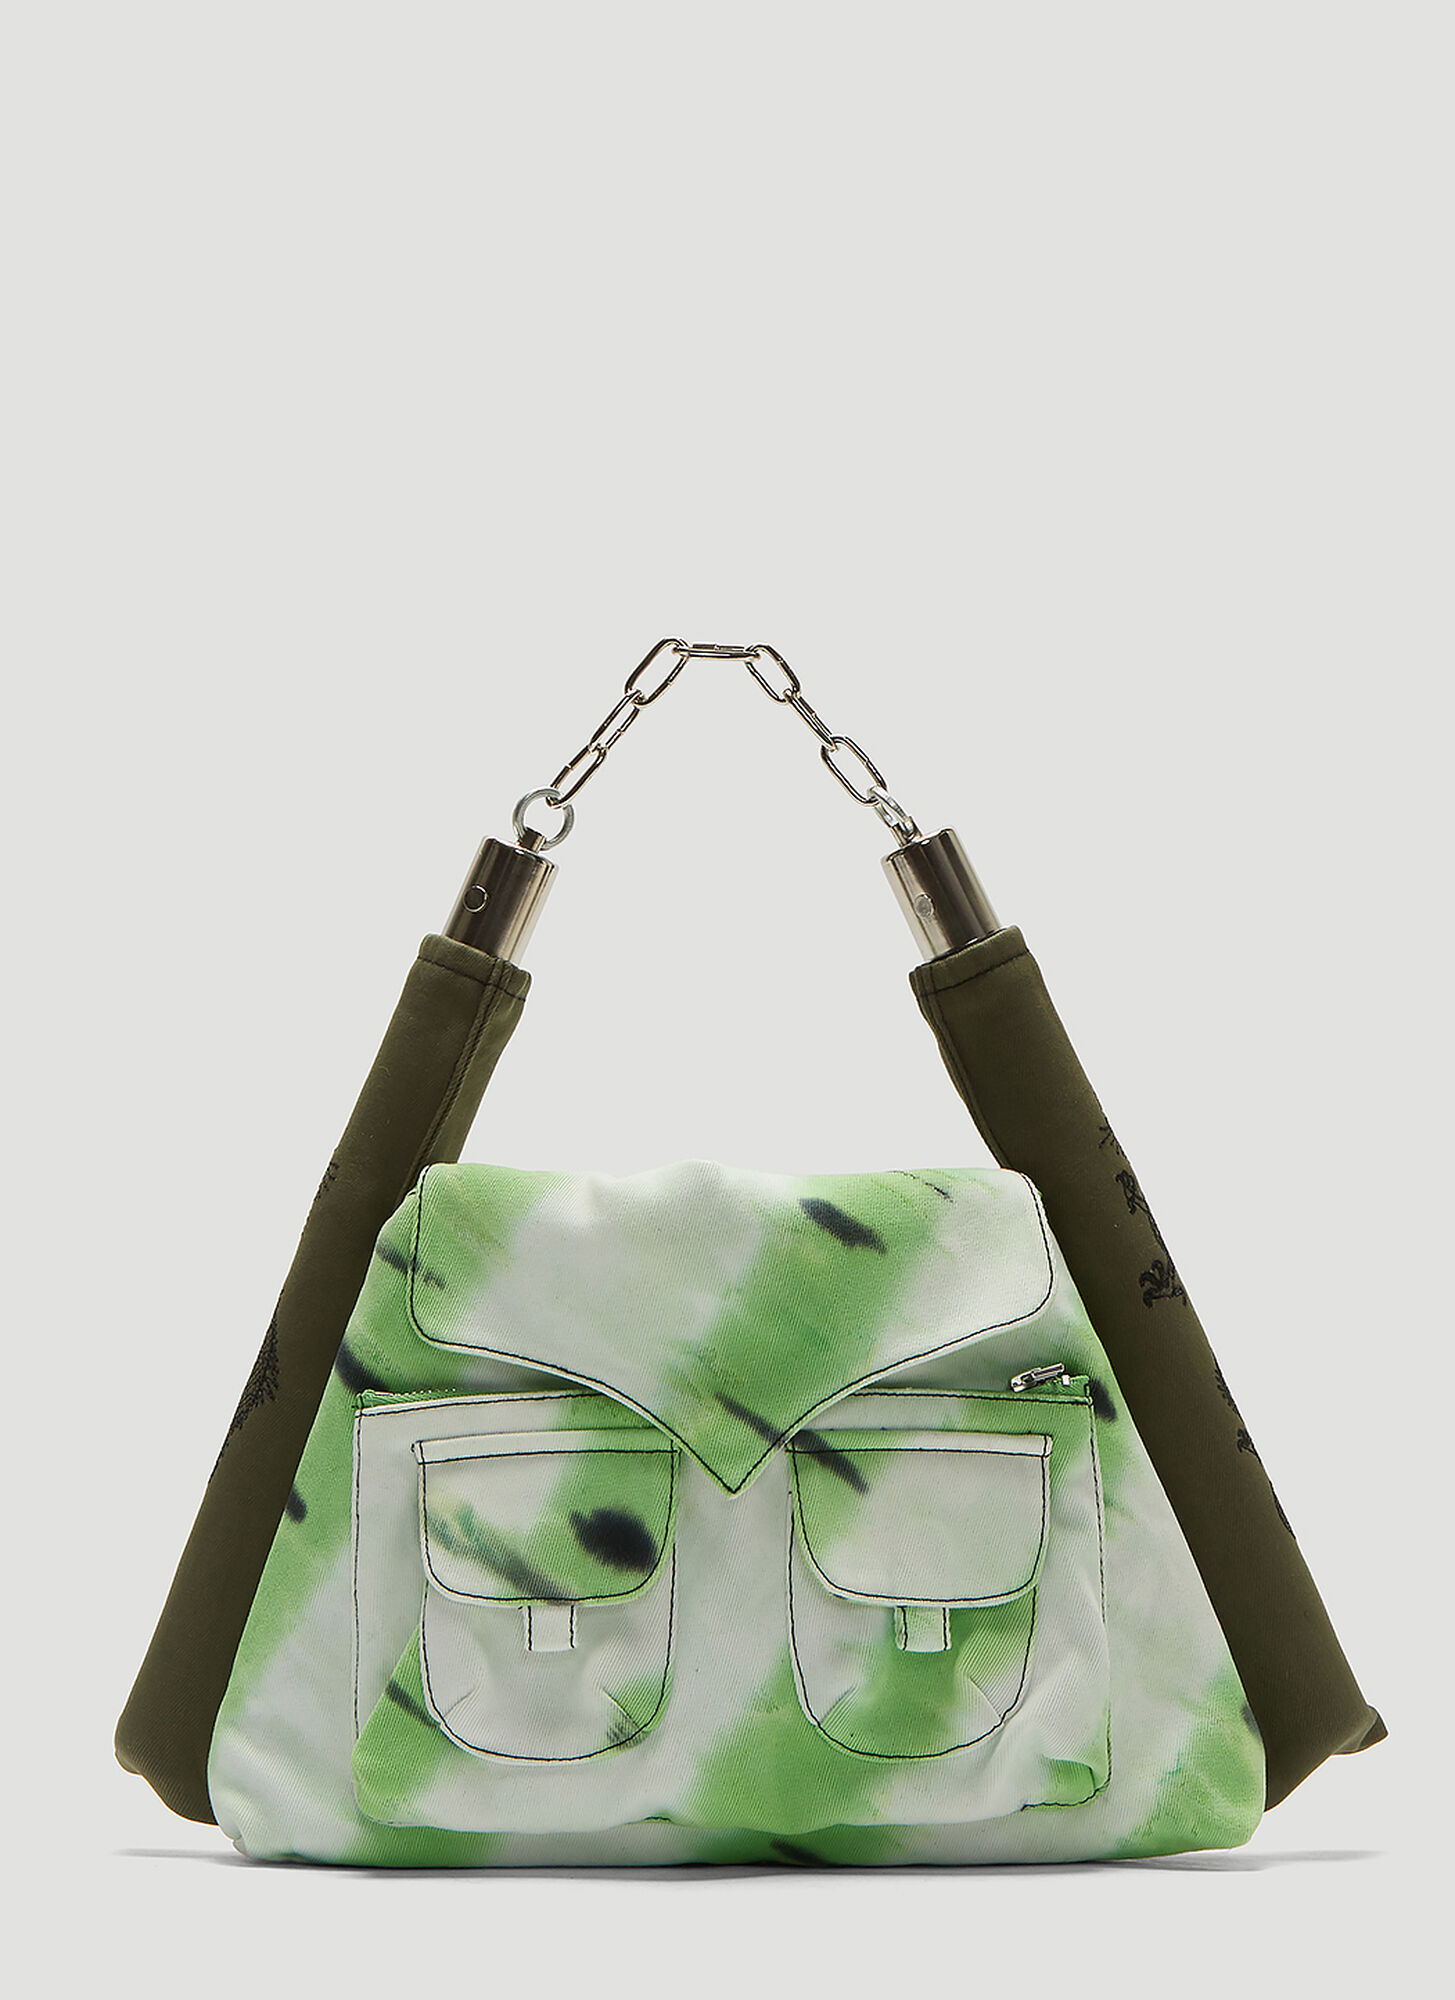 ASAI Tie-Dye Nunchuck Bag in Green